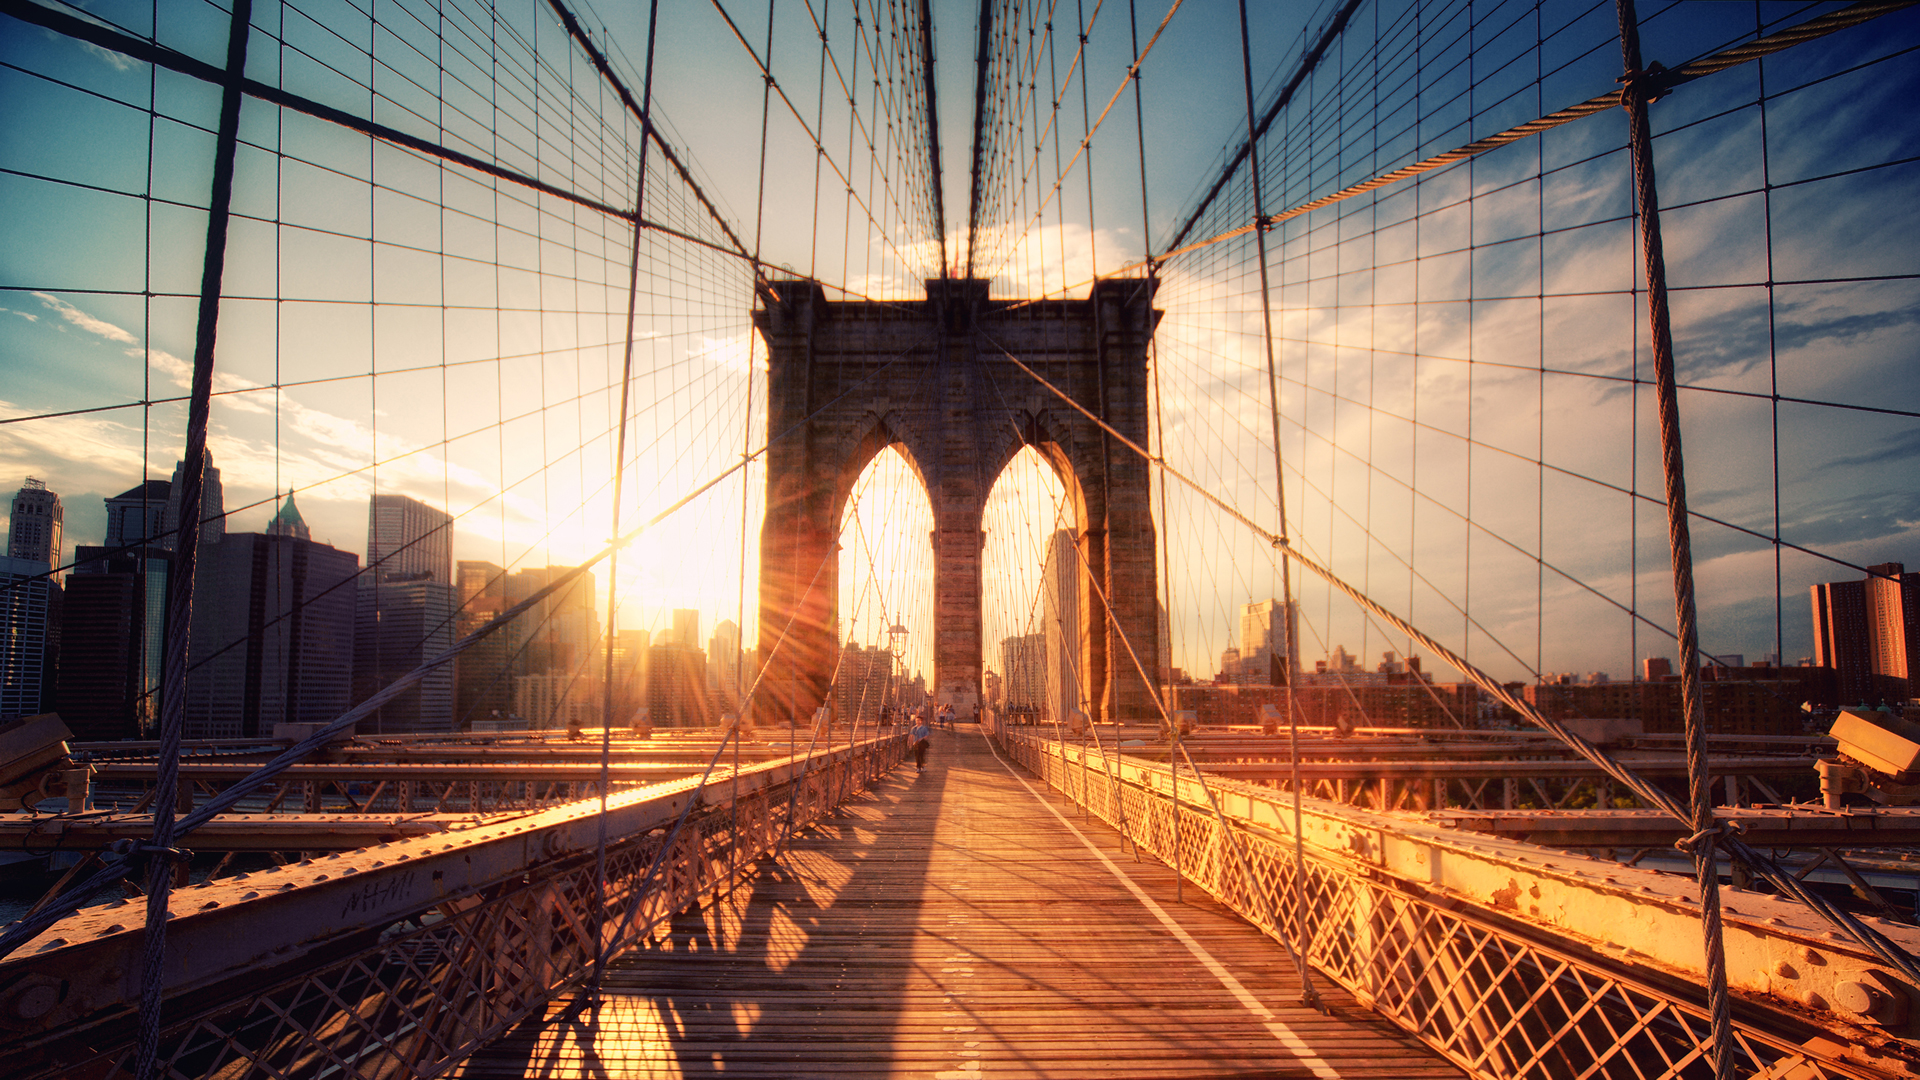 Watch: The Brooklyn Bridge